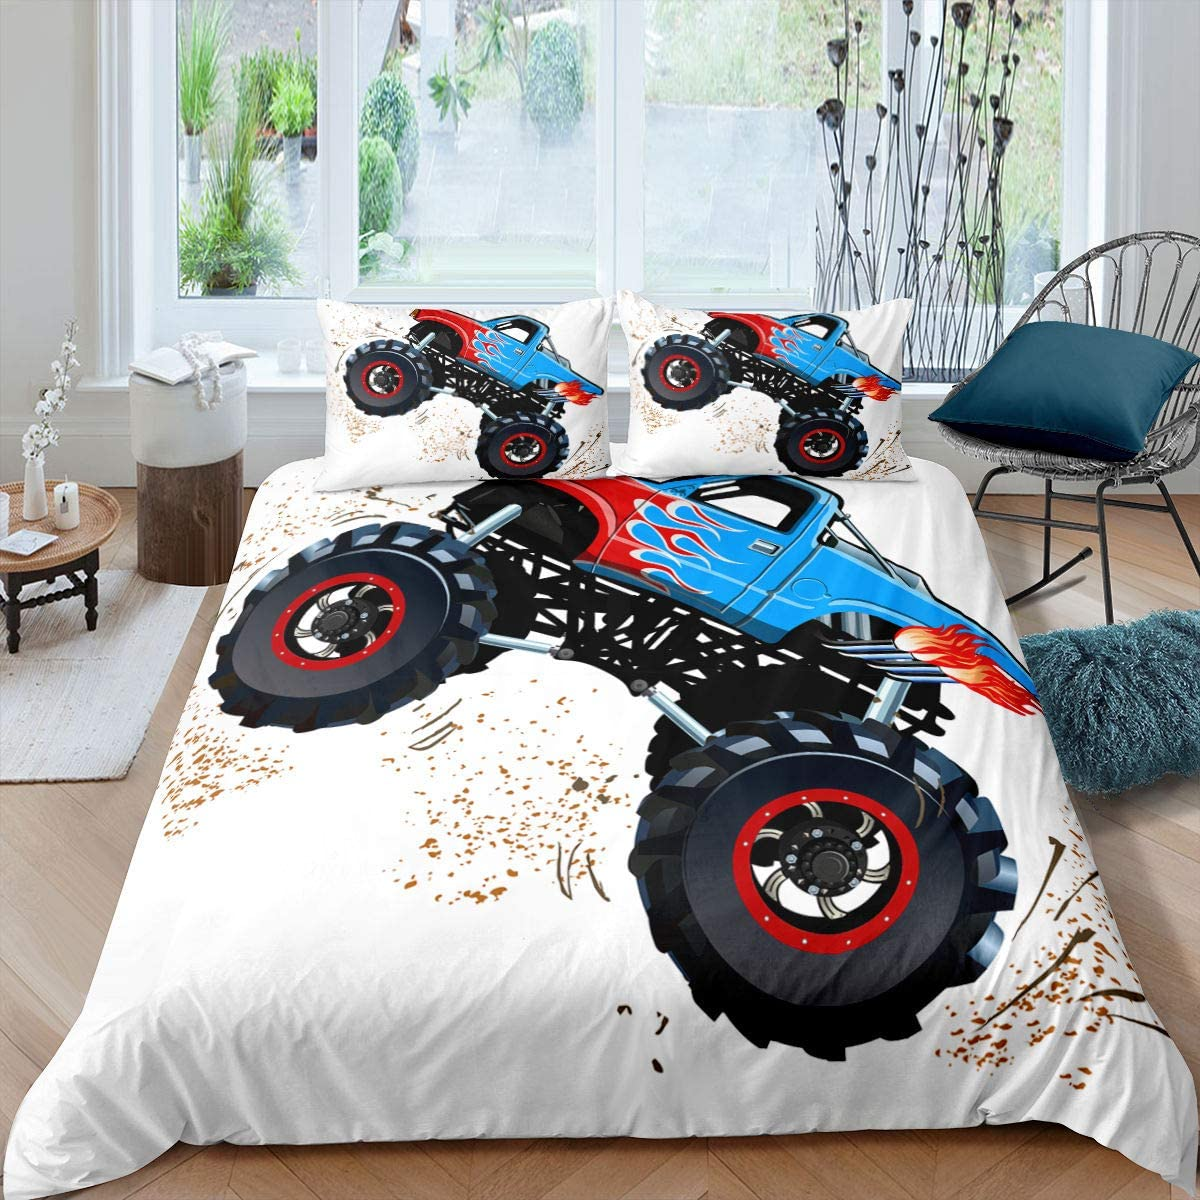 3D Monster Trucks Home Duvet Cover Full Size Boys Dirt Bike Car Bedding Set Extreme Speed Sports Comforter Cover for Kids Teens Adult Enormous Wheels Mountain Buggy Bedclothes Soft Bedroom Décor